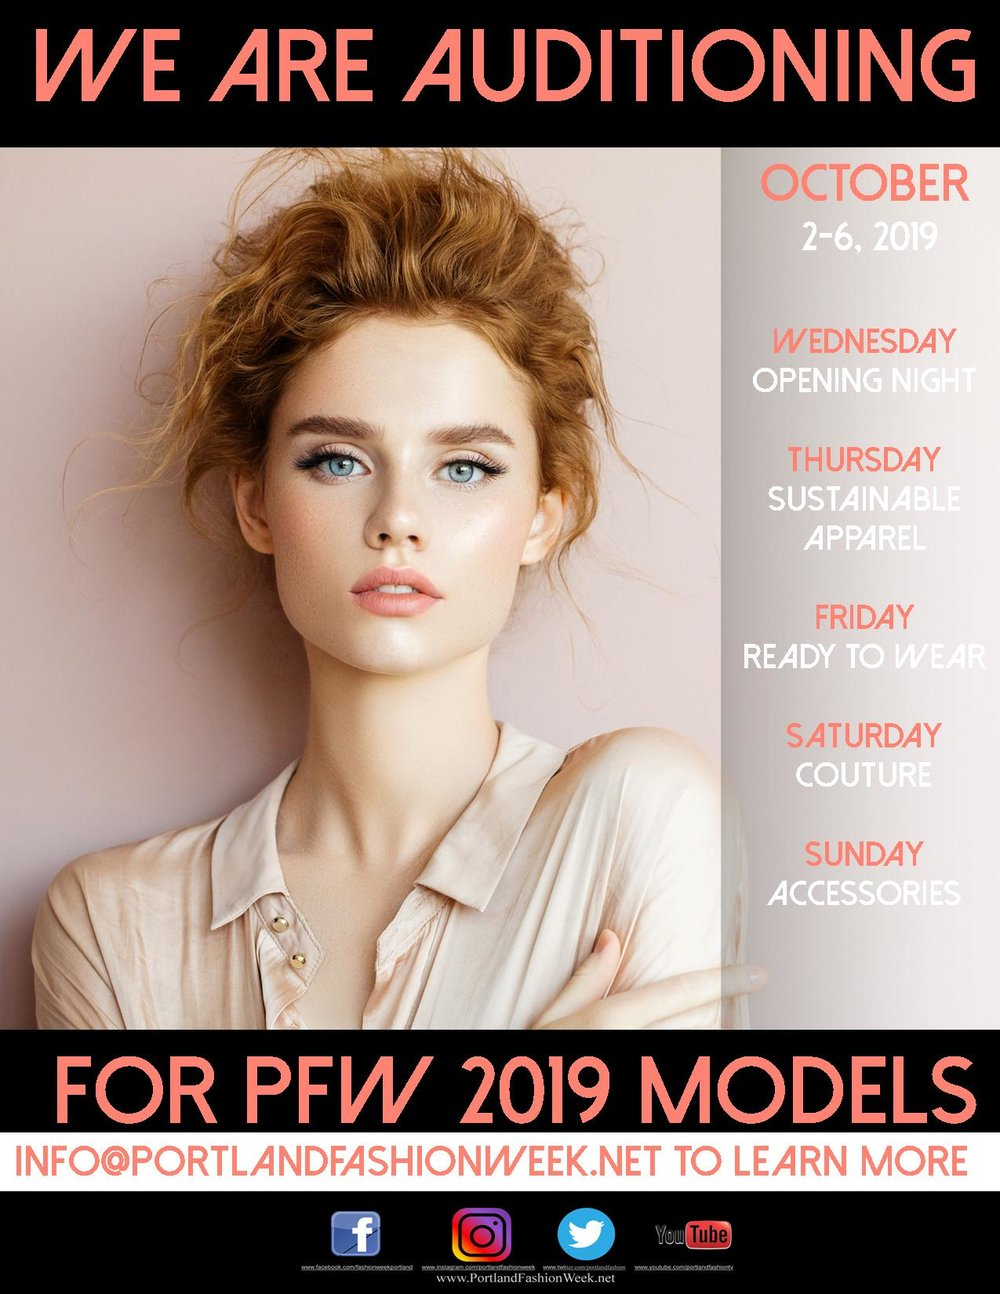 - #Scouting: Become a PFW ModelPortland Fashion Week holds several model searches throughout the year, attracting standout novice and veteran models from across the nation. With Model Search Events spanning the Portland metro out to Central Oregon, we look for lasting impressions that will resonate with our designers and audience.What happens at a PFW Model Search?We run a well oiled machine to see, on average, 75 models in under an hour. As models check in, they are asked to sign an NDA and fill out a stat sheet, for later. Our team will then lead our potential models through a series of steps including a still photo, professional measurements, and a recorded runway walk. While we wish we had time to chat with all of our potential models, our panel of professional judges are focused on viewing and reviewing all candidates, to then share decisions with our team who will be in contact with those, selected.Interested in starting the process and auditioning to be a PFW model? Contact us at model@portlandfashionweek.net. Please include your stats (height, weight, bust, waist, inseam, dress size, shoe size, hair/eye color), a headshot, and full body photo. A member from our team will reach back to you with upcoming Model Search information.